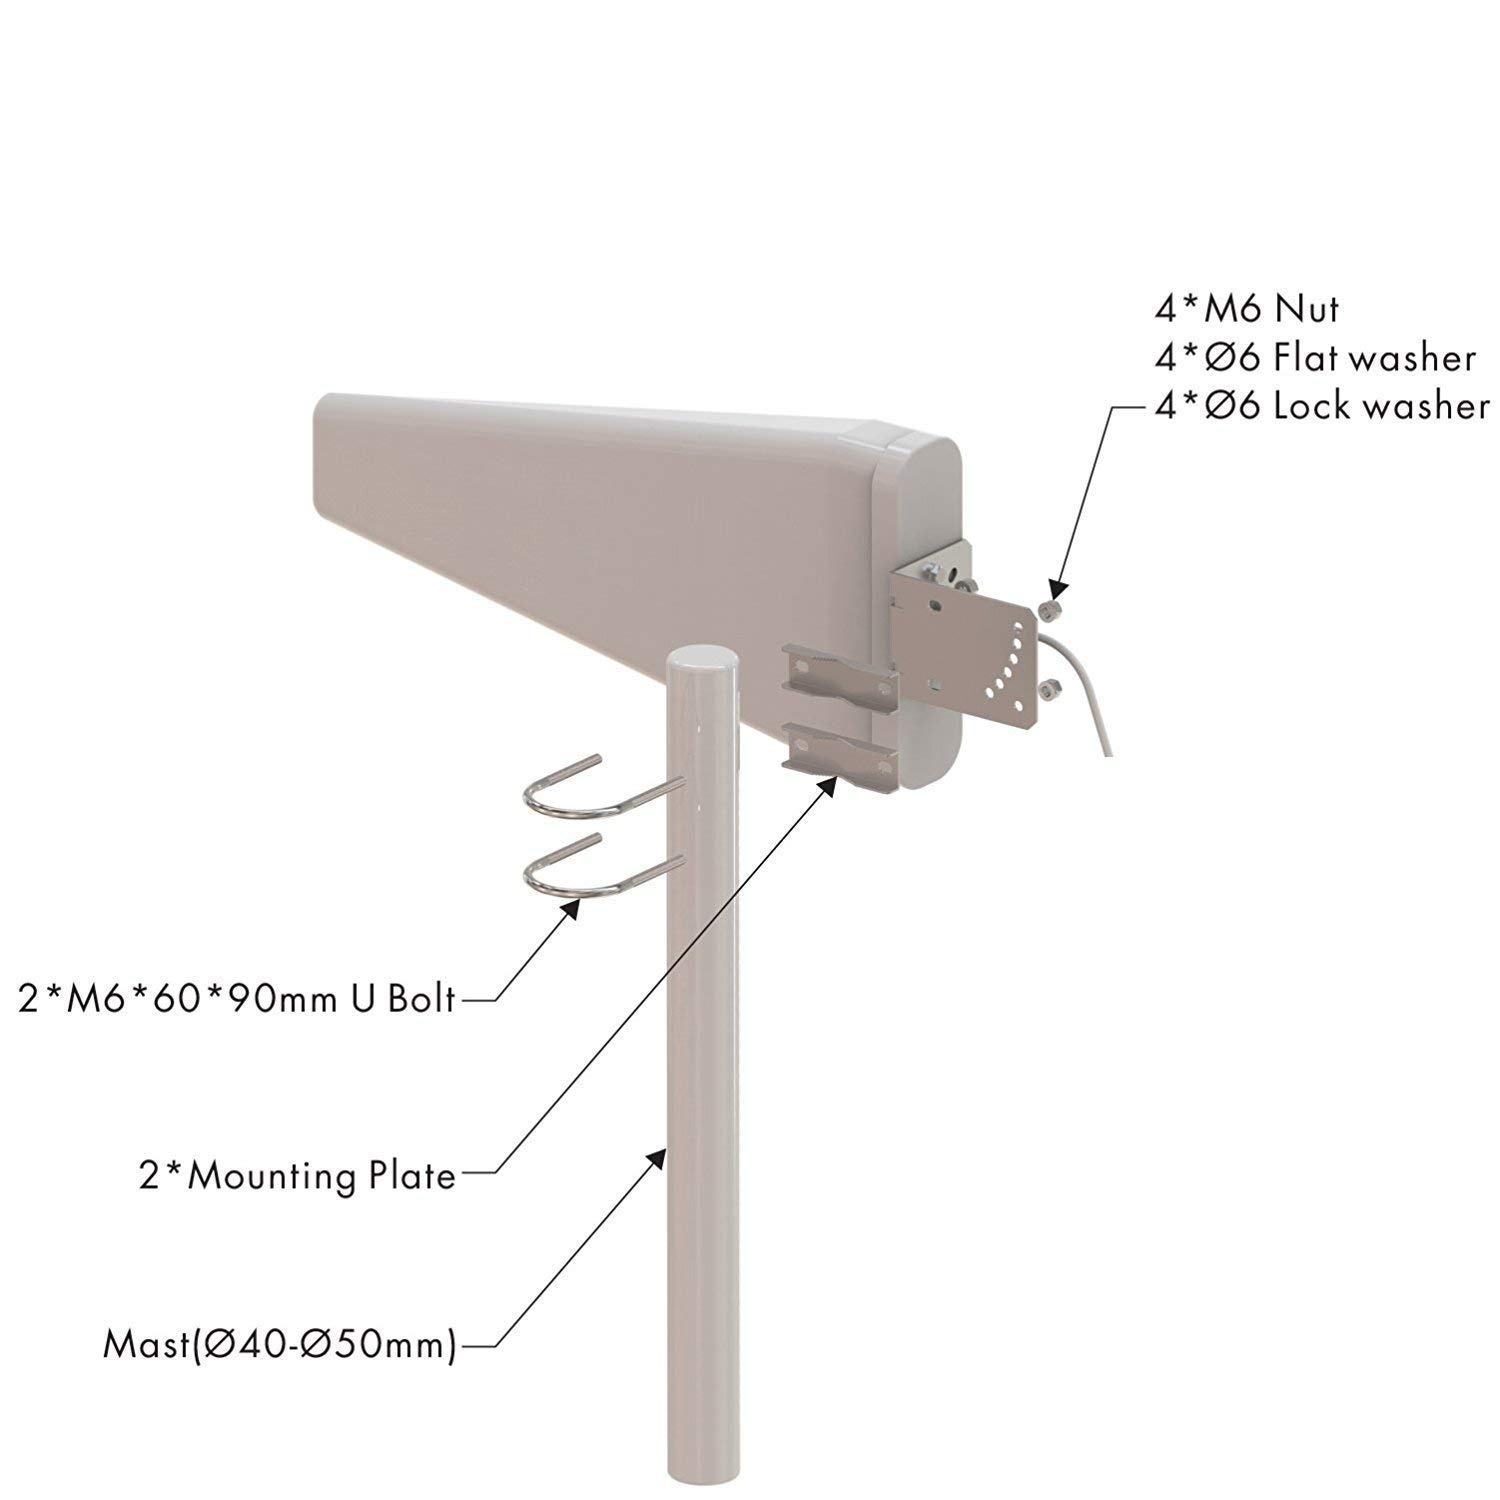 Tupavco TP545 Yagi Directional Roof Antenna 3G/4G/LTE Wide Band 11dBi 700MHz to 2.7GHz Range 2FT Cable w/ 2FT RP-SMA Male Cable to TS-9 Adapter - Cell Phone Signal Booster Log Periodic Cellular by Tupavco